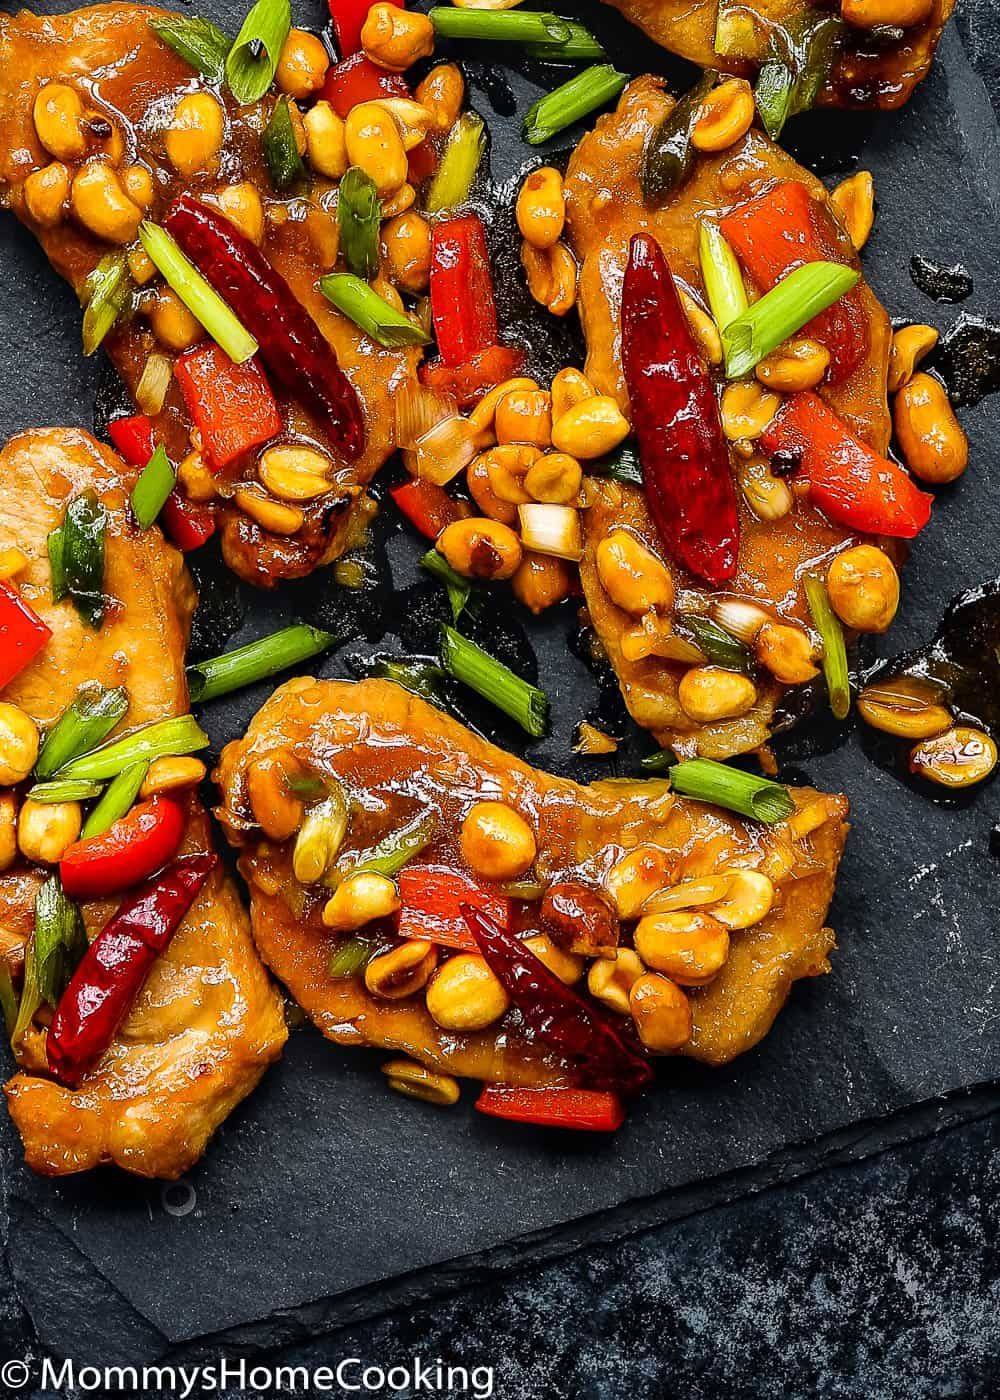 Easy Kung Pao Pork Chops garnished with green onions